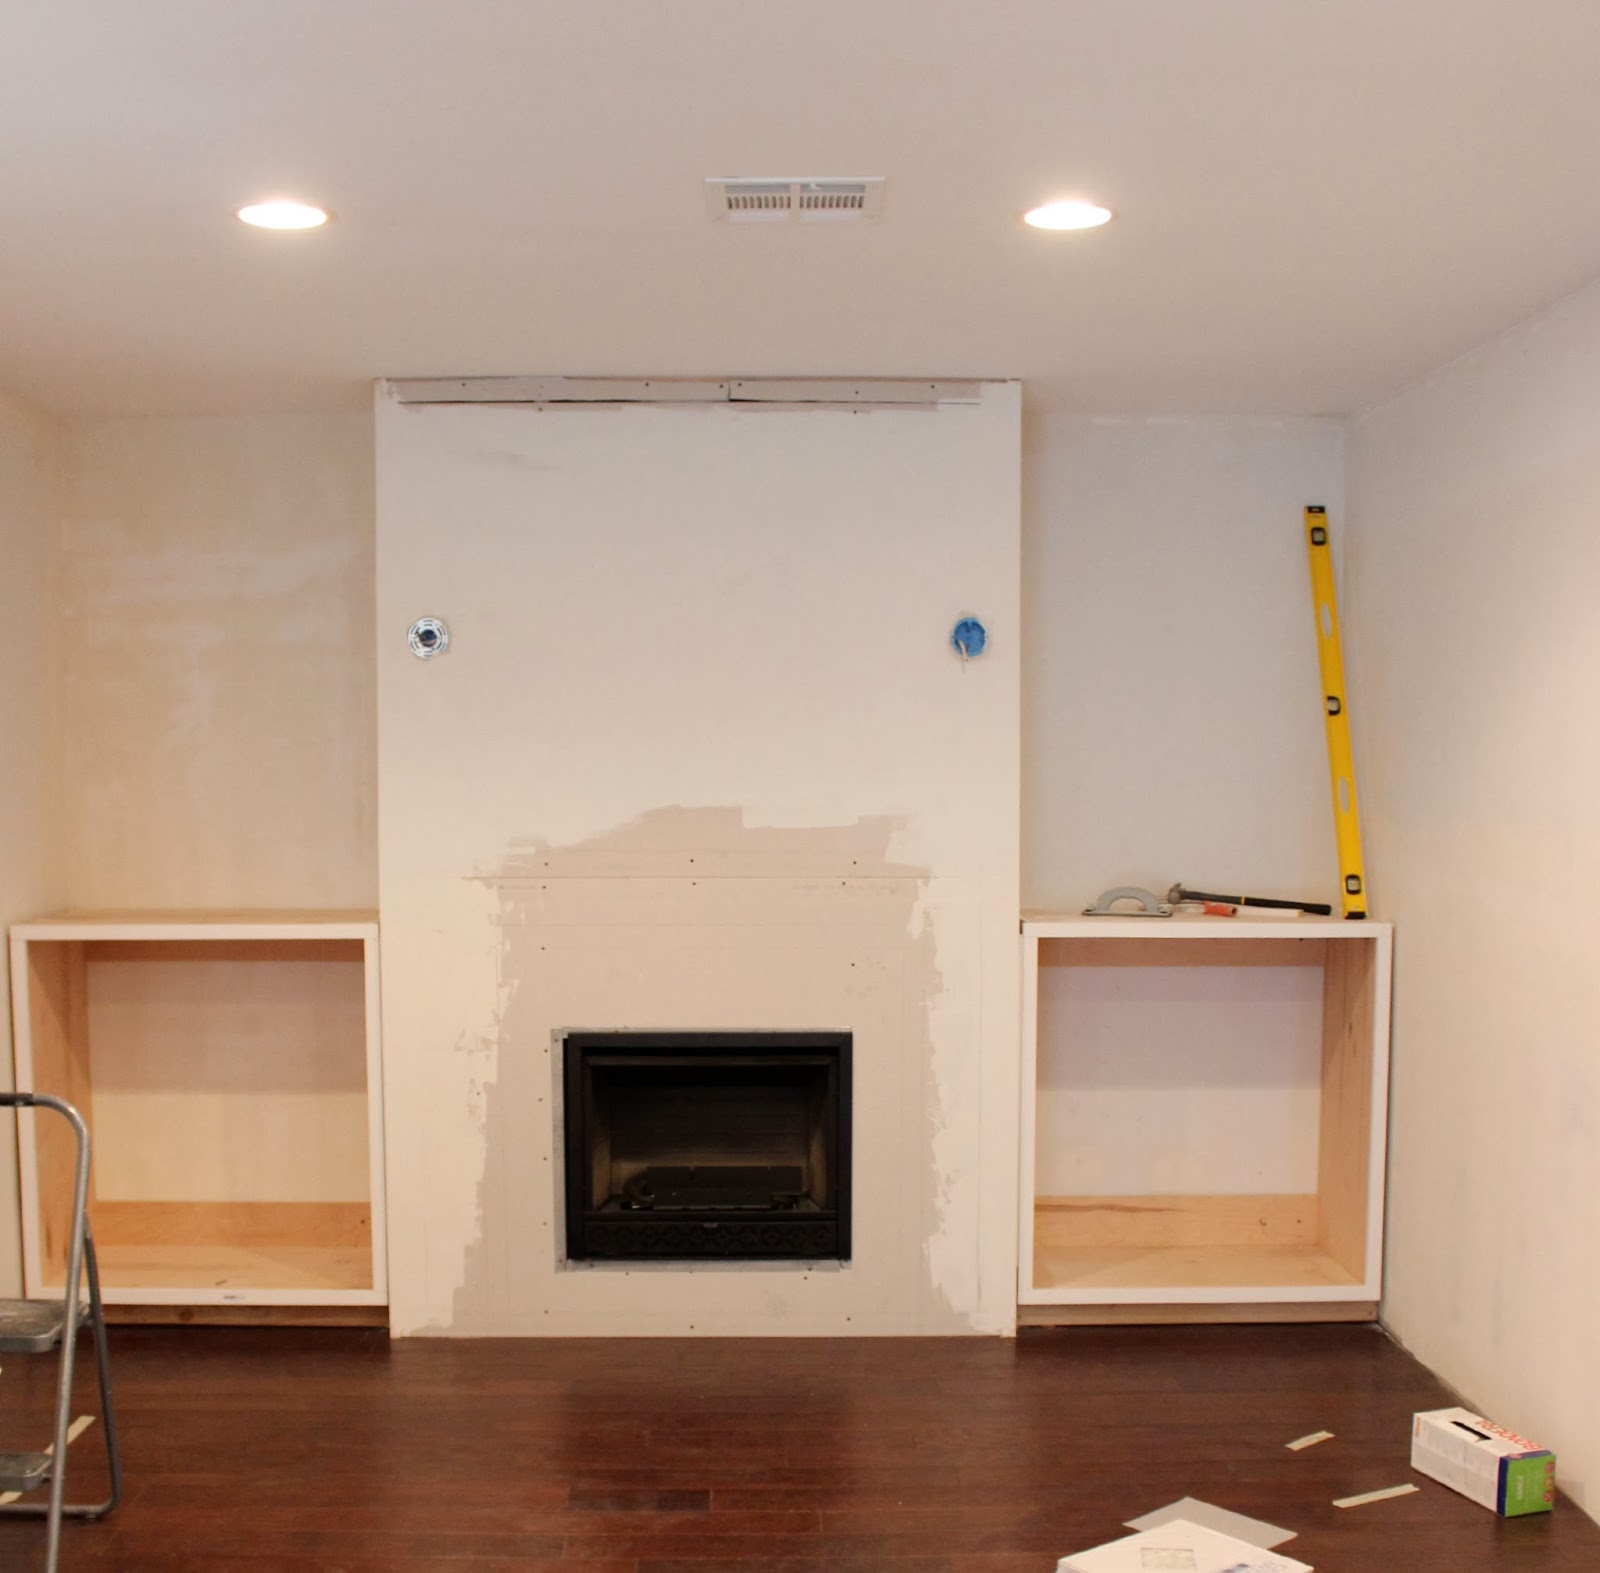 Fireplace Cabinets: Built In Fireplace And Cabinets Tutorial